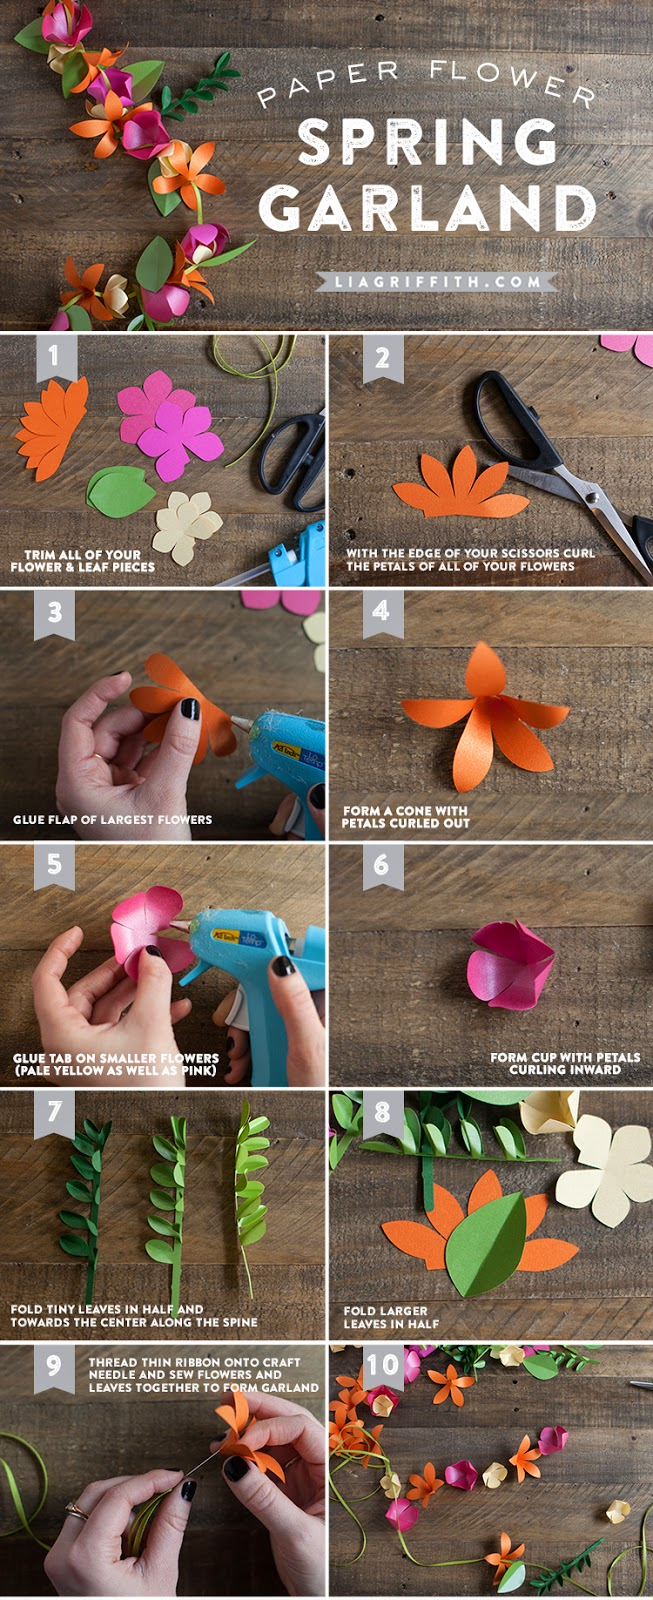 Enchanted revelries spring paper flower garland tutorial her paper boxwood wreath in mondays post thats the great thing about this garland you can add or omit any parts of it and it will still look great mightylinksfo